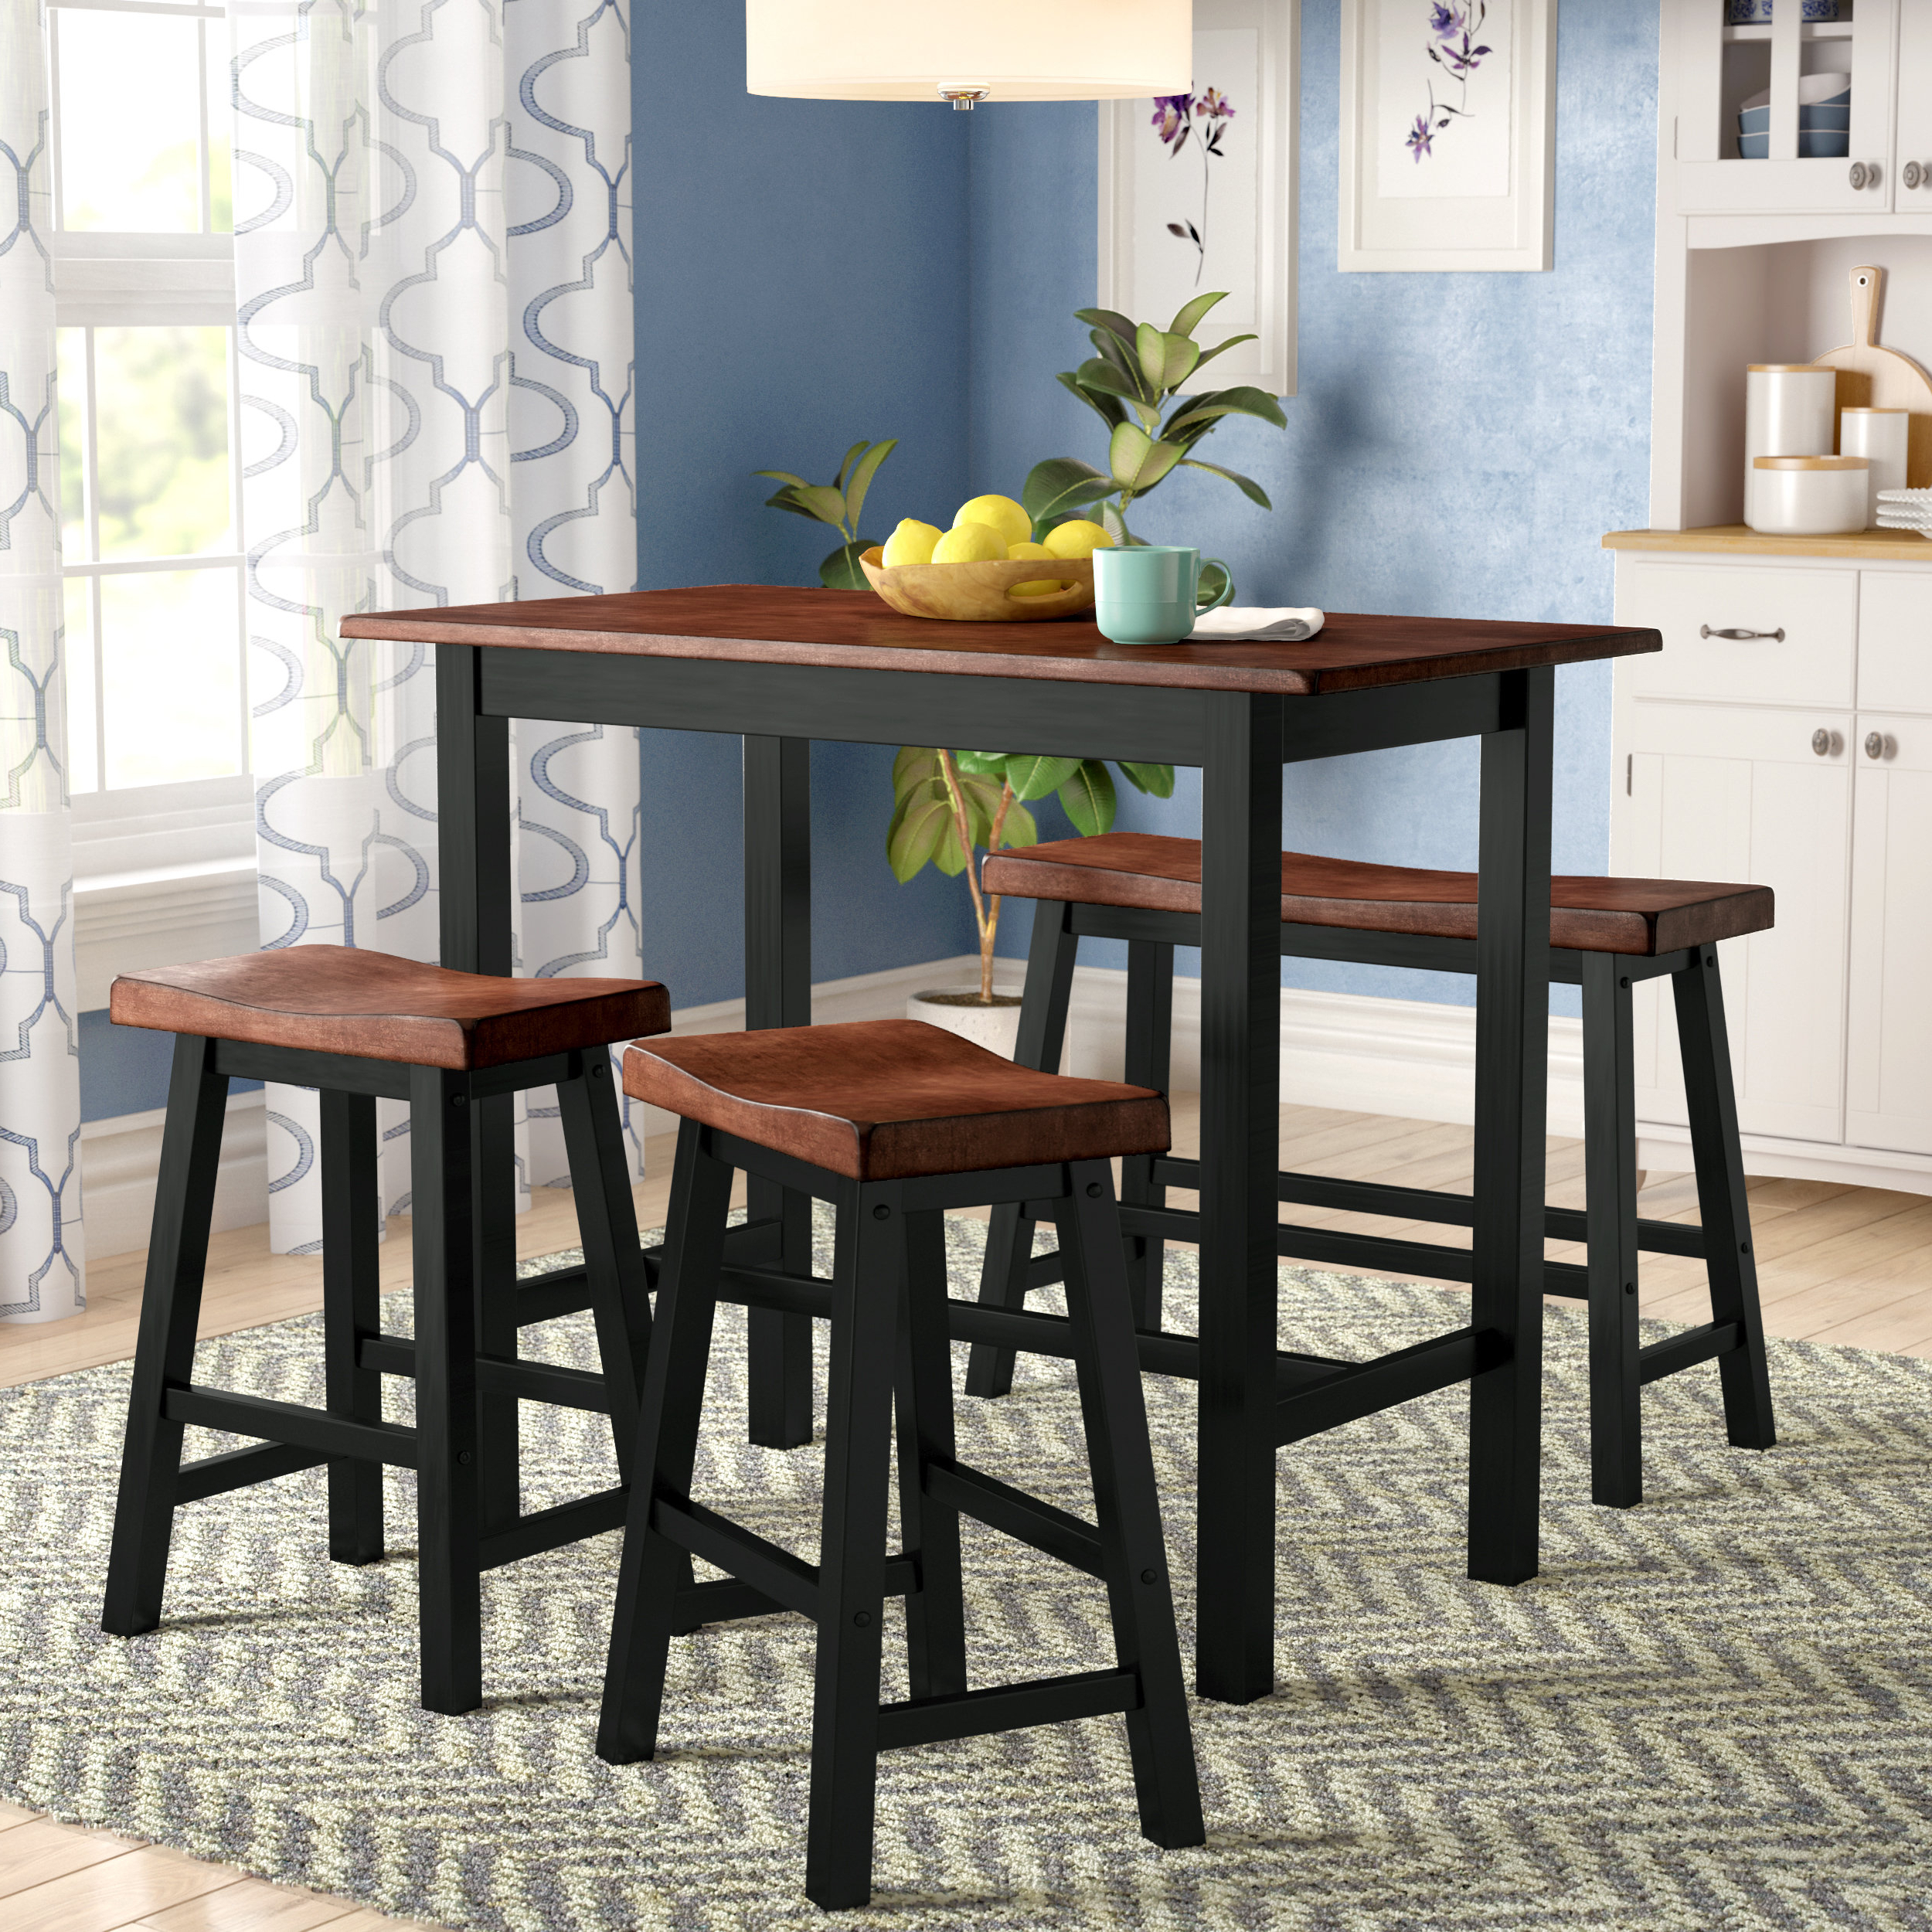 Berrios 3 Piece Counter Height Dining Sets Within Best And Newest Red Barrel Studio Winsted 4 Piece Counter Height Dining Set (View 7 of 25)